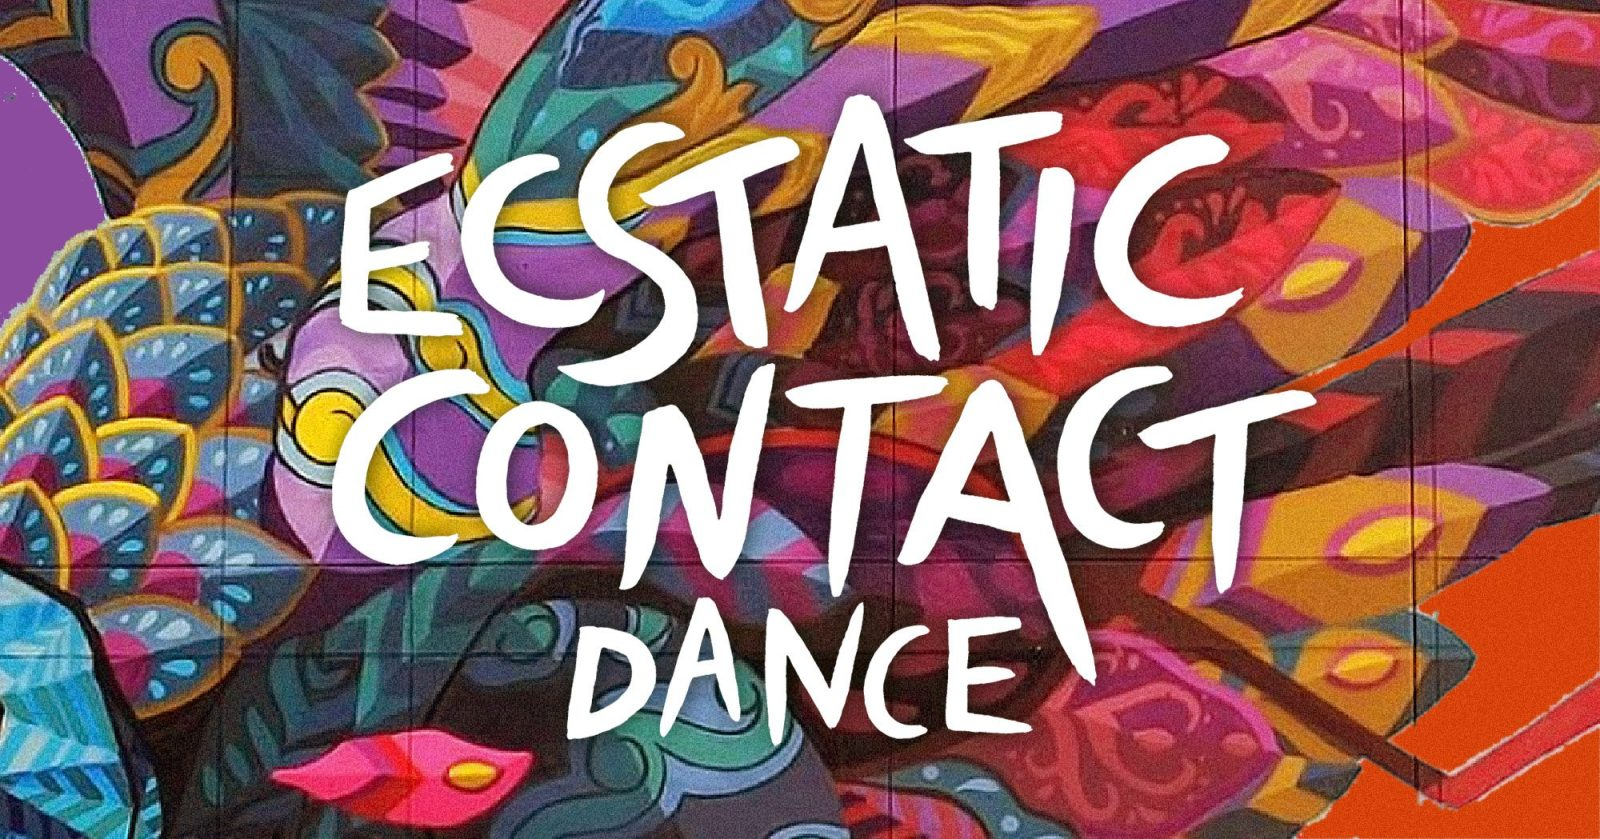 ecstatic contact dance